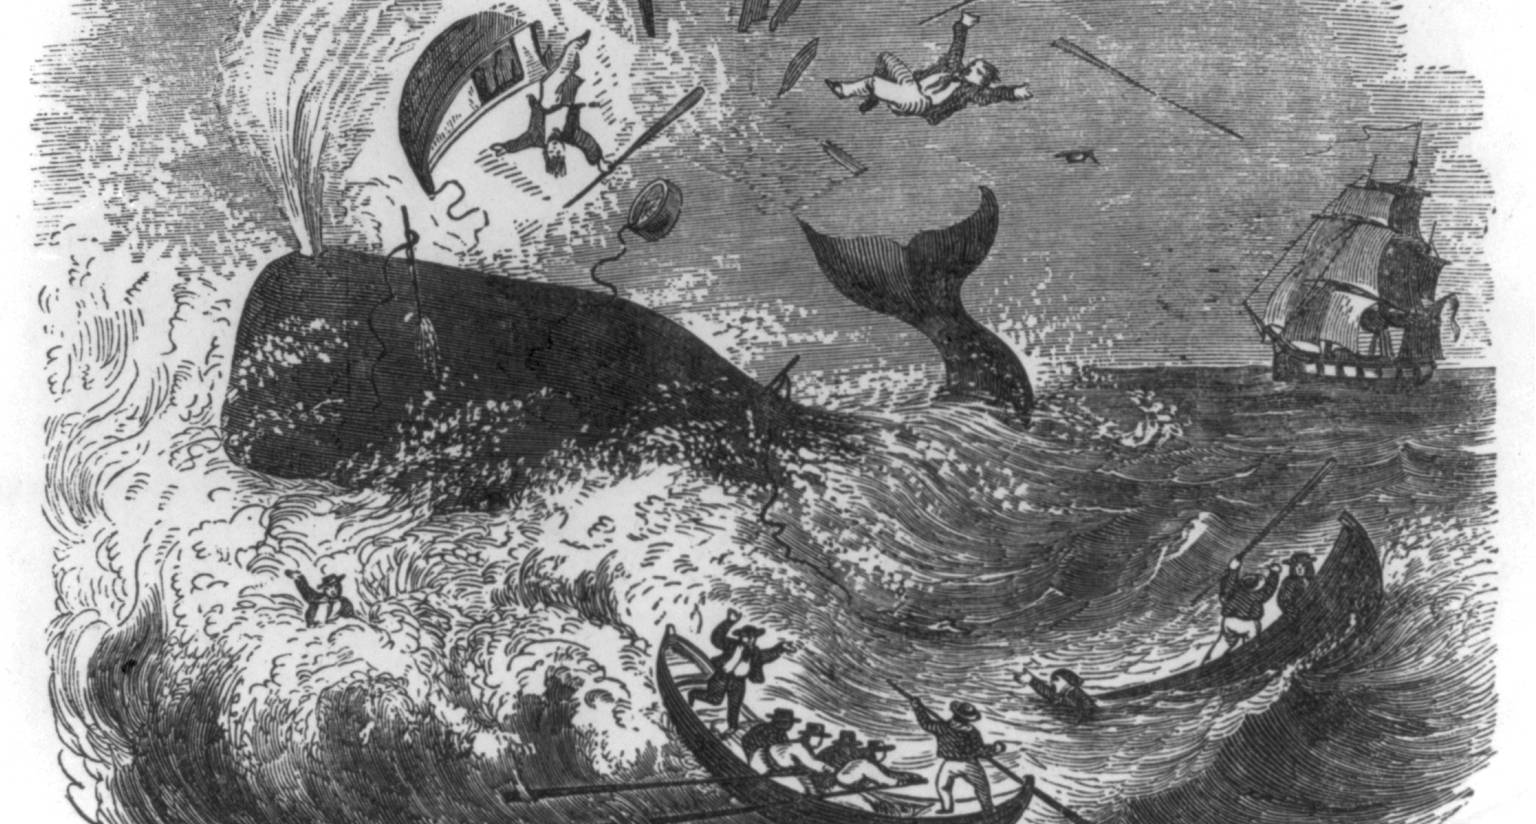 """""""Perilous situation of whalemen,"""" wood engraving, 1861. (Library of Congress Prints and Photographs Division Washington, D.C.)"""